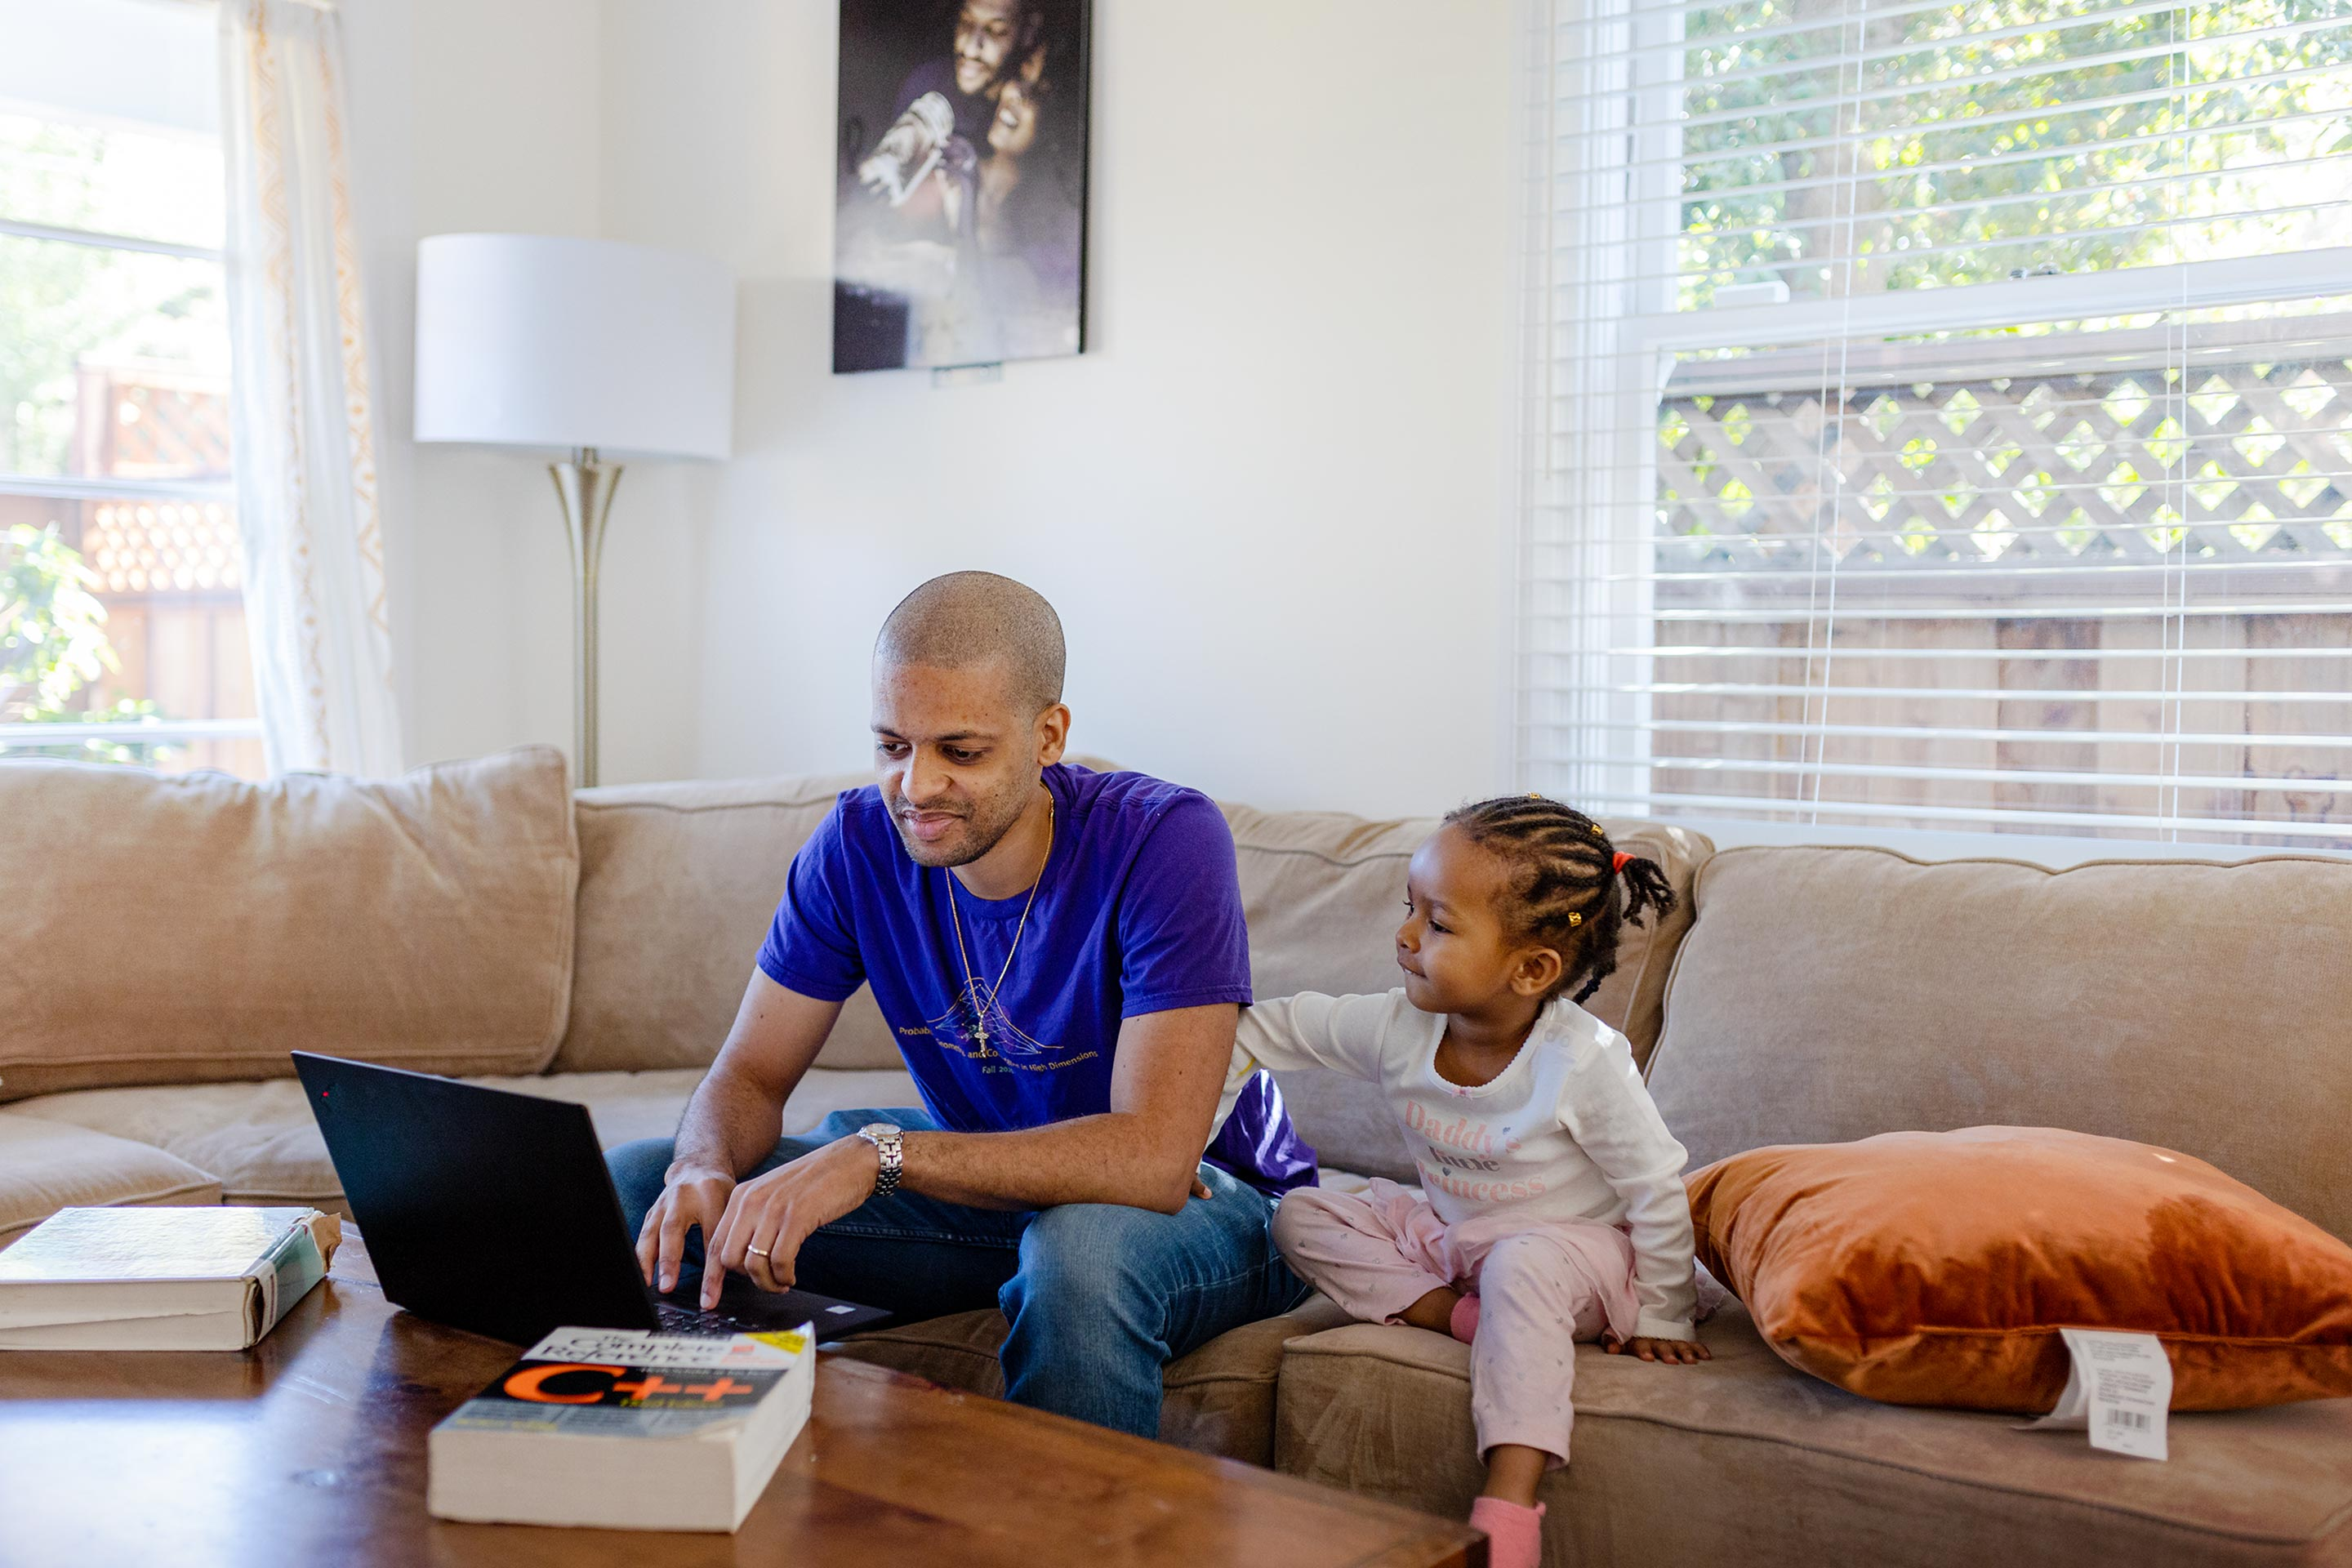 Computer scientist Jelani Nelson seated on a couch next to his daughter. There are textbooks and a laptop on the coffee table in front of him.